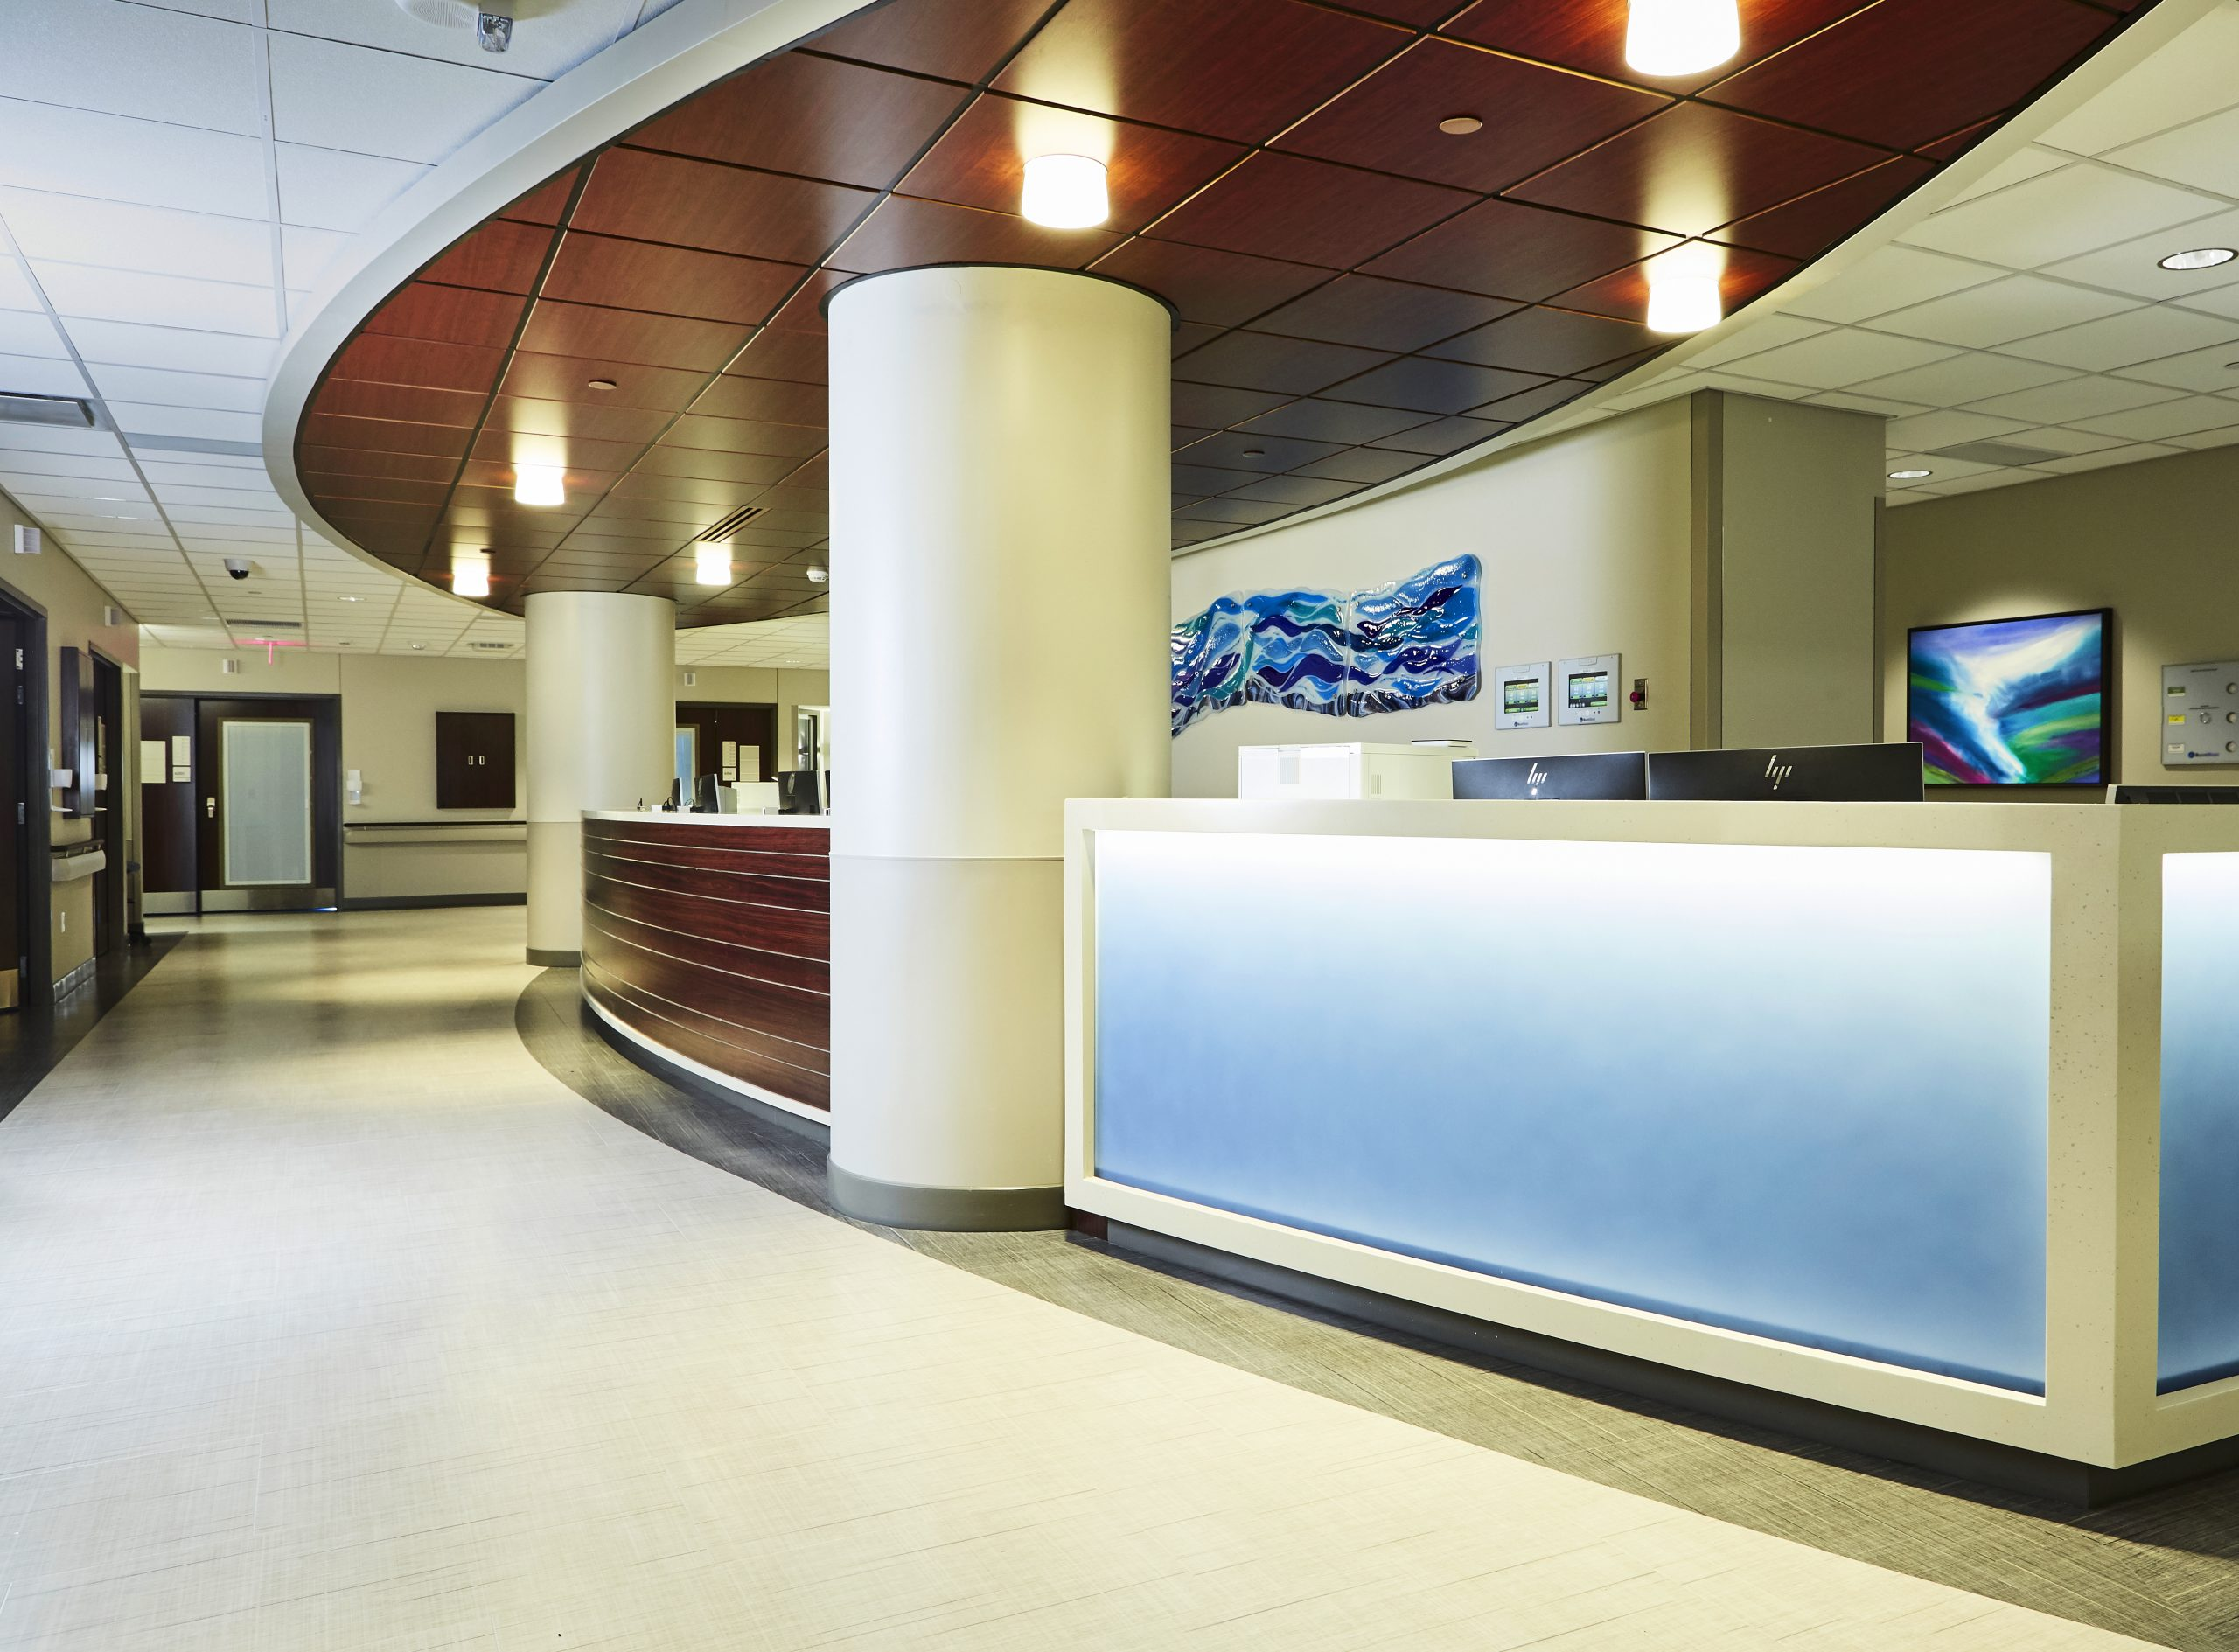 View of the Progressive Care Unit for Transplant and Advanced Surgery at Methodist Dallas Medical Center